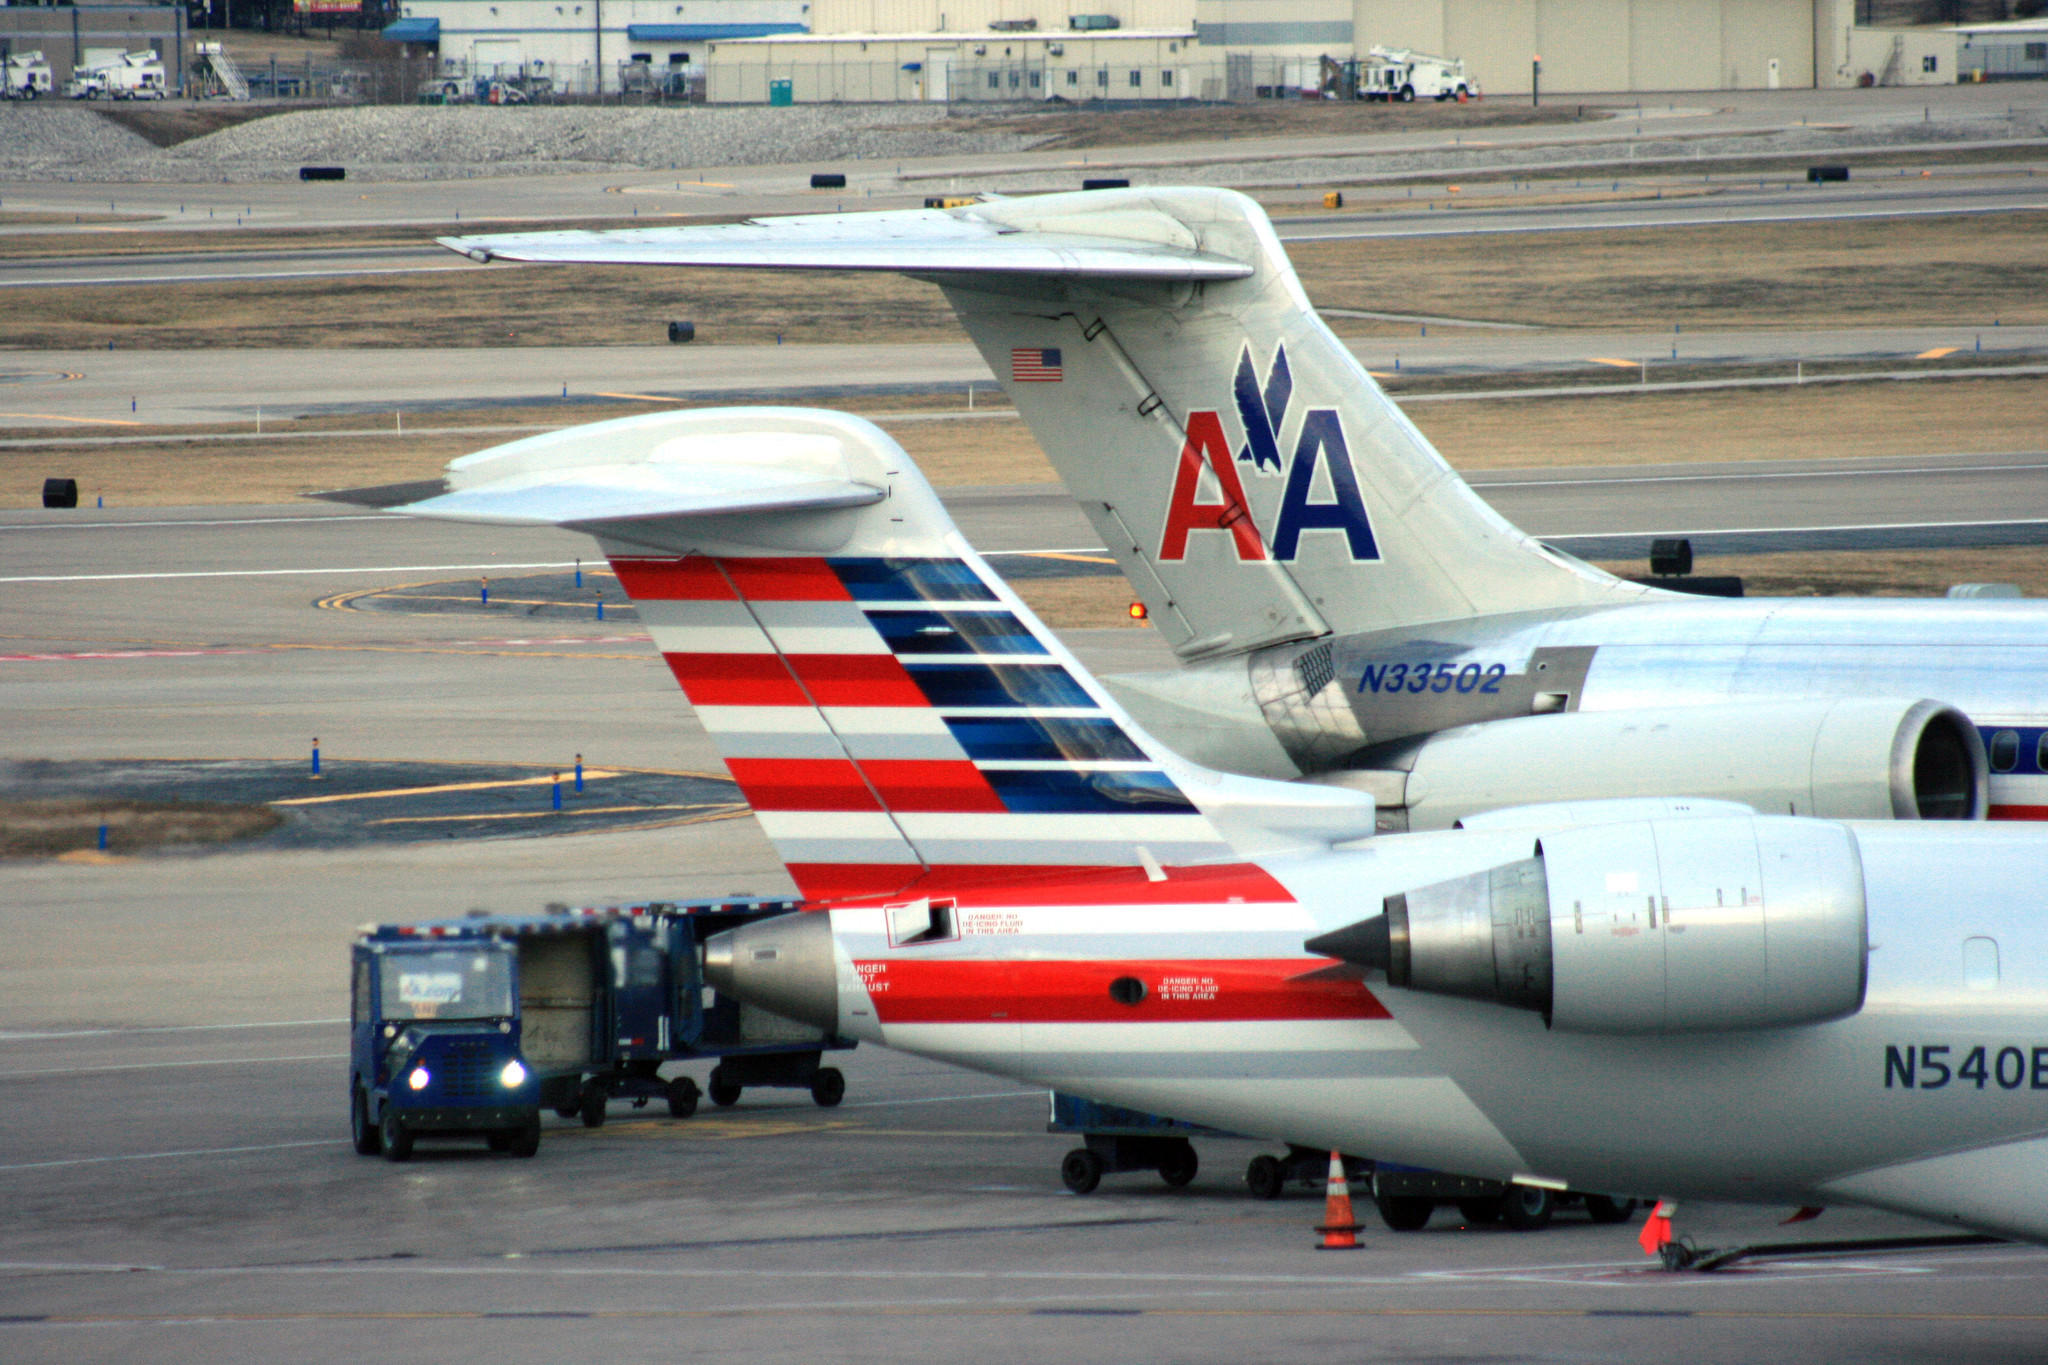 Flight delays and cancellations increase when airline competition drops, a new study says. Above, two American Airlines jets in St. Louis in December 2013.